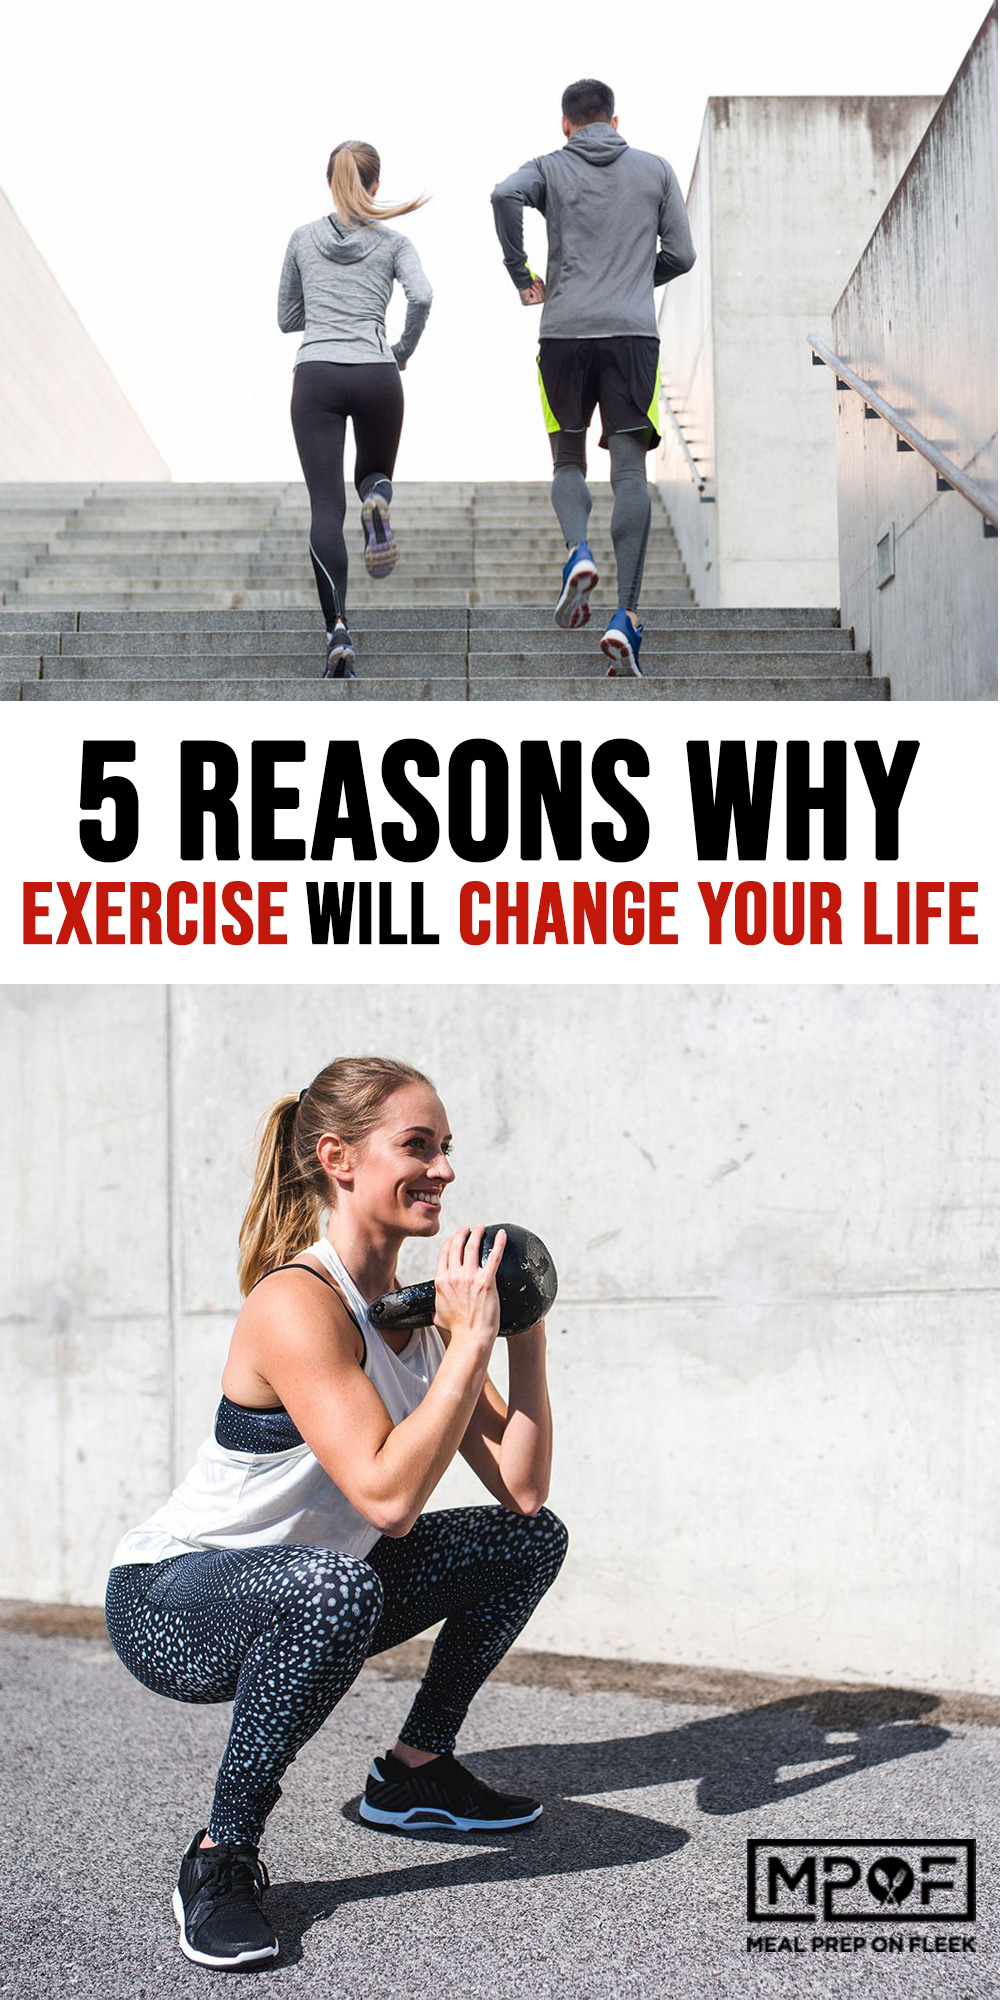 exercise-will-change-your-life